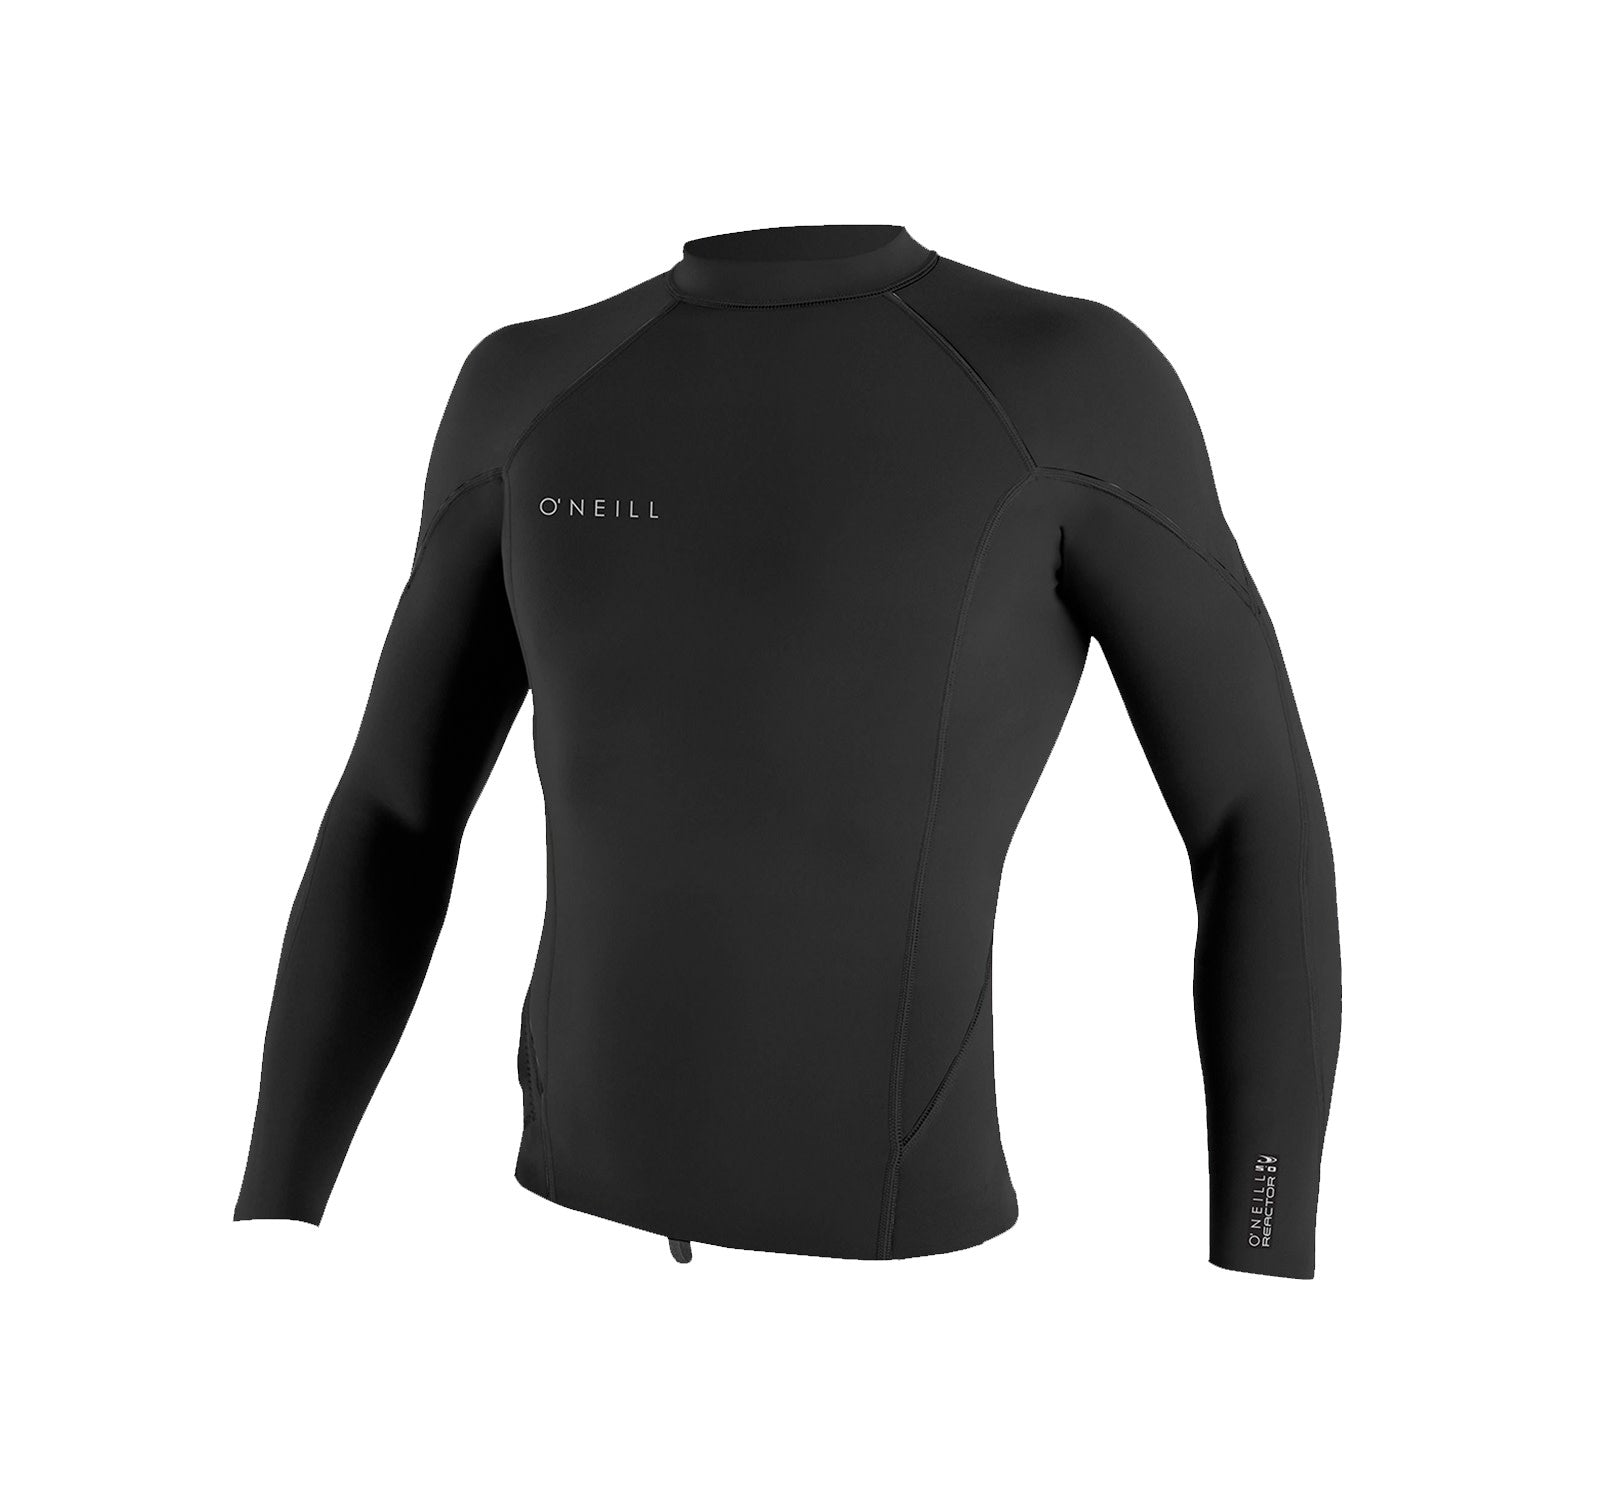 O'Neill Reactor II 1.5mm Men's L/S Wetsuit Jacket